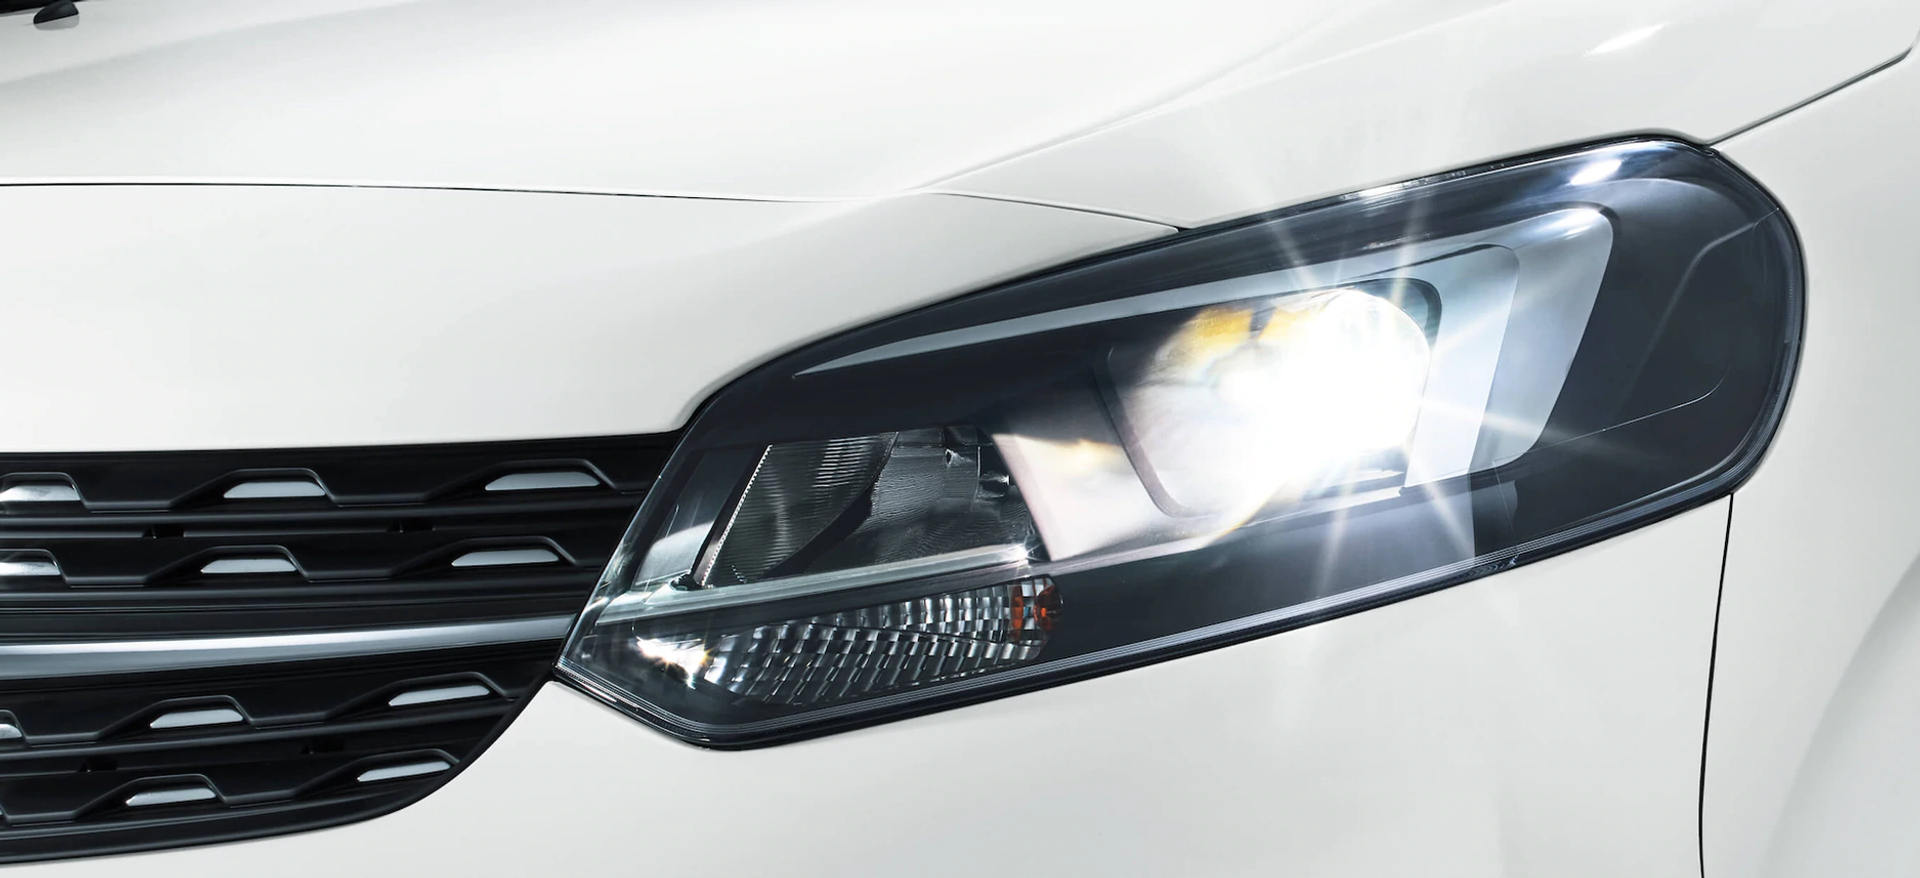 opel_zafira_life_exterior_led_lights_21x